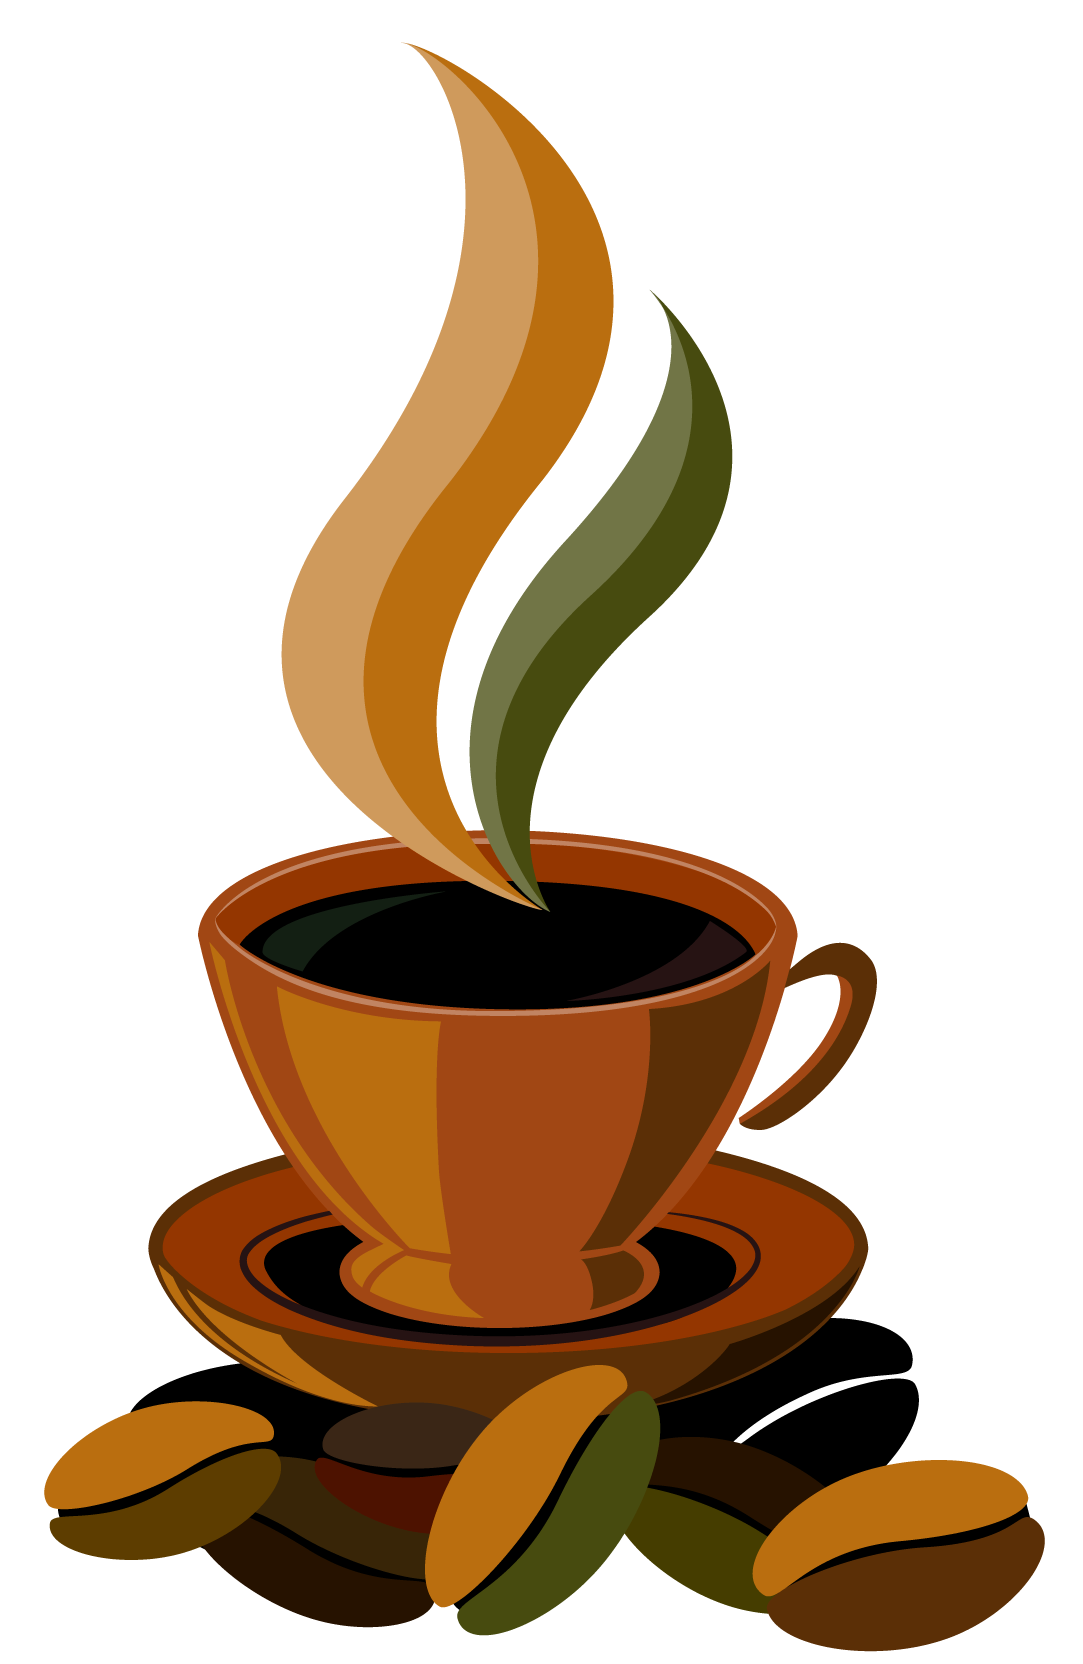 coffee cup illustration png